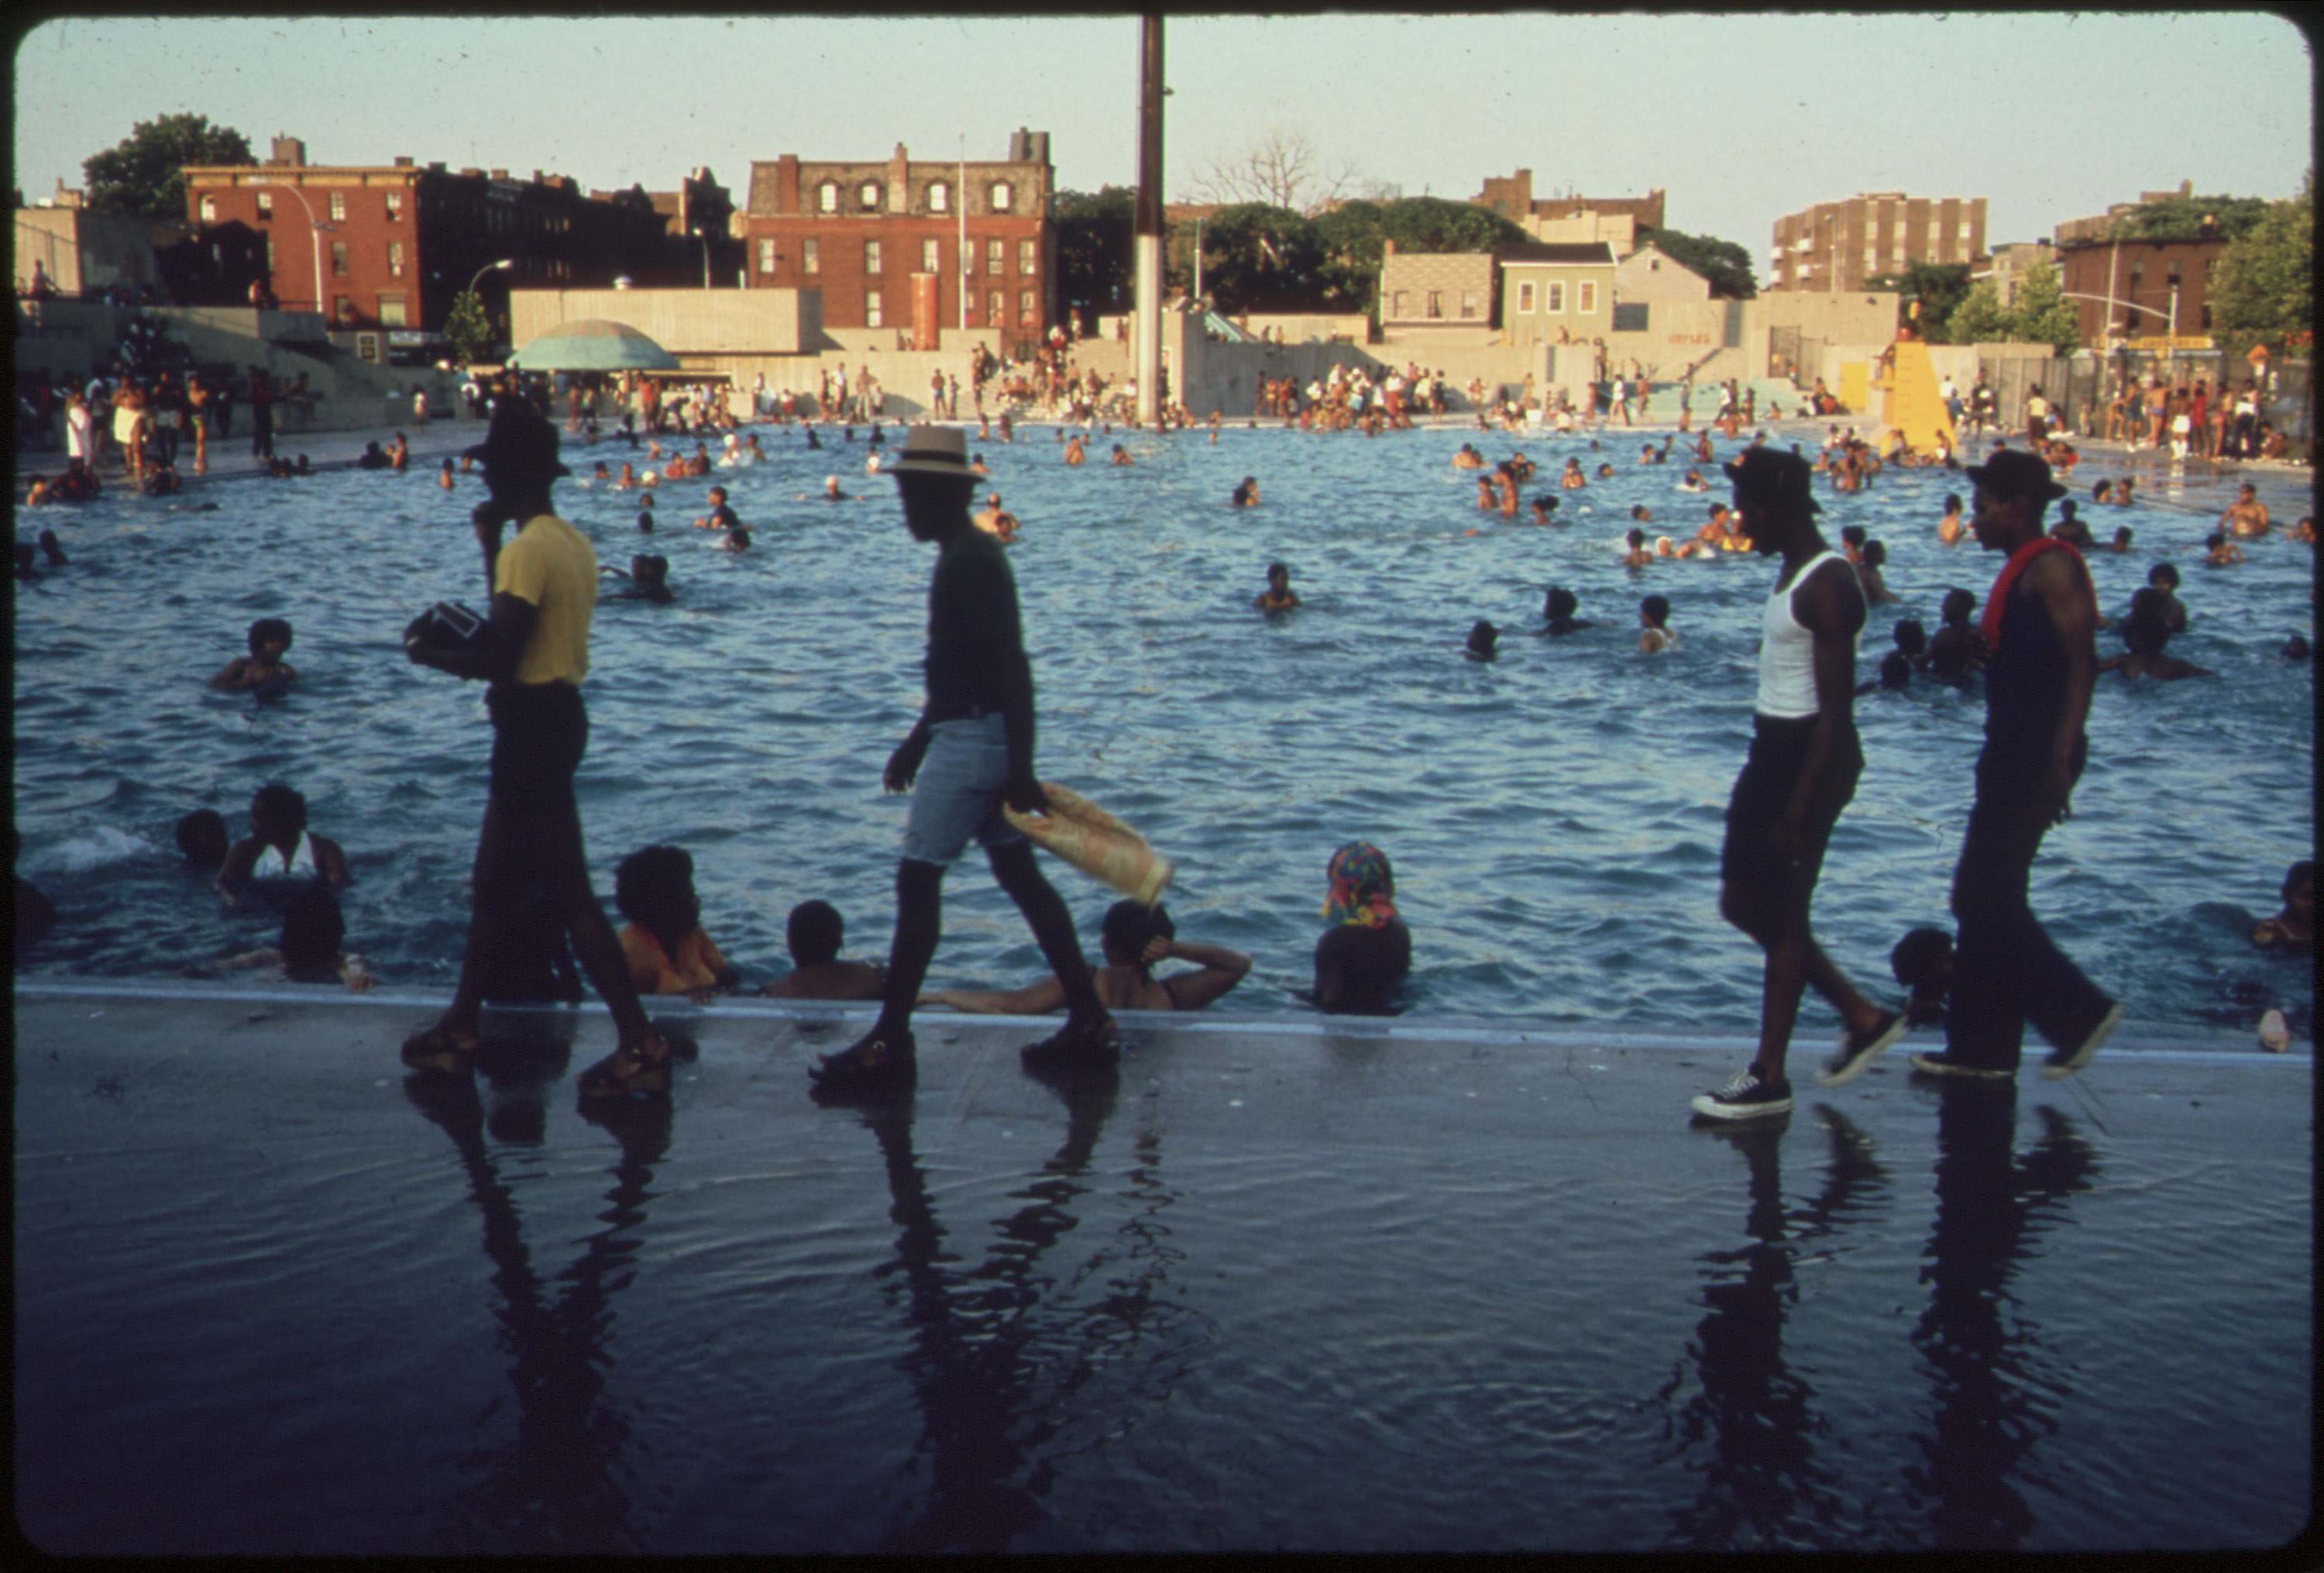 The Kosciusko public swimming pool, Bedford-Stuyvesant district of Brooklyn, July 1974.